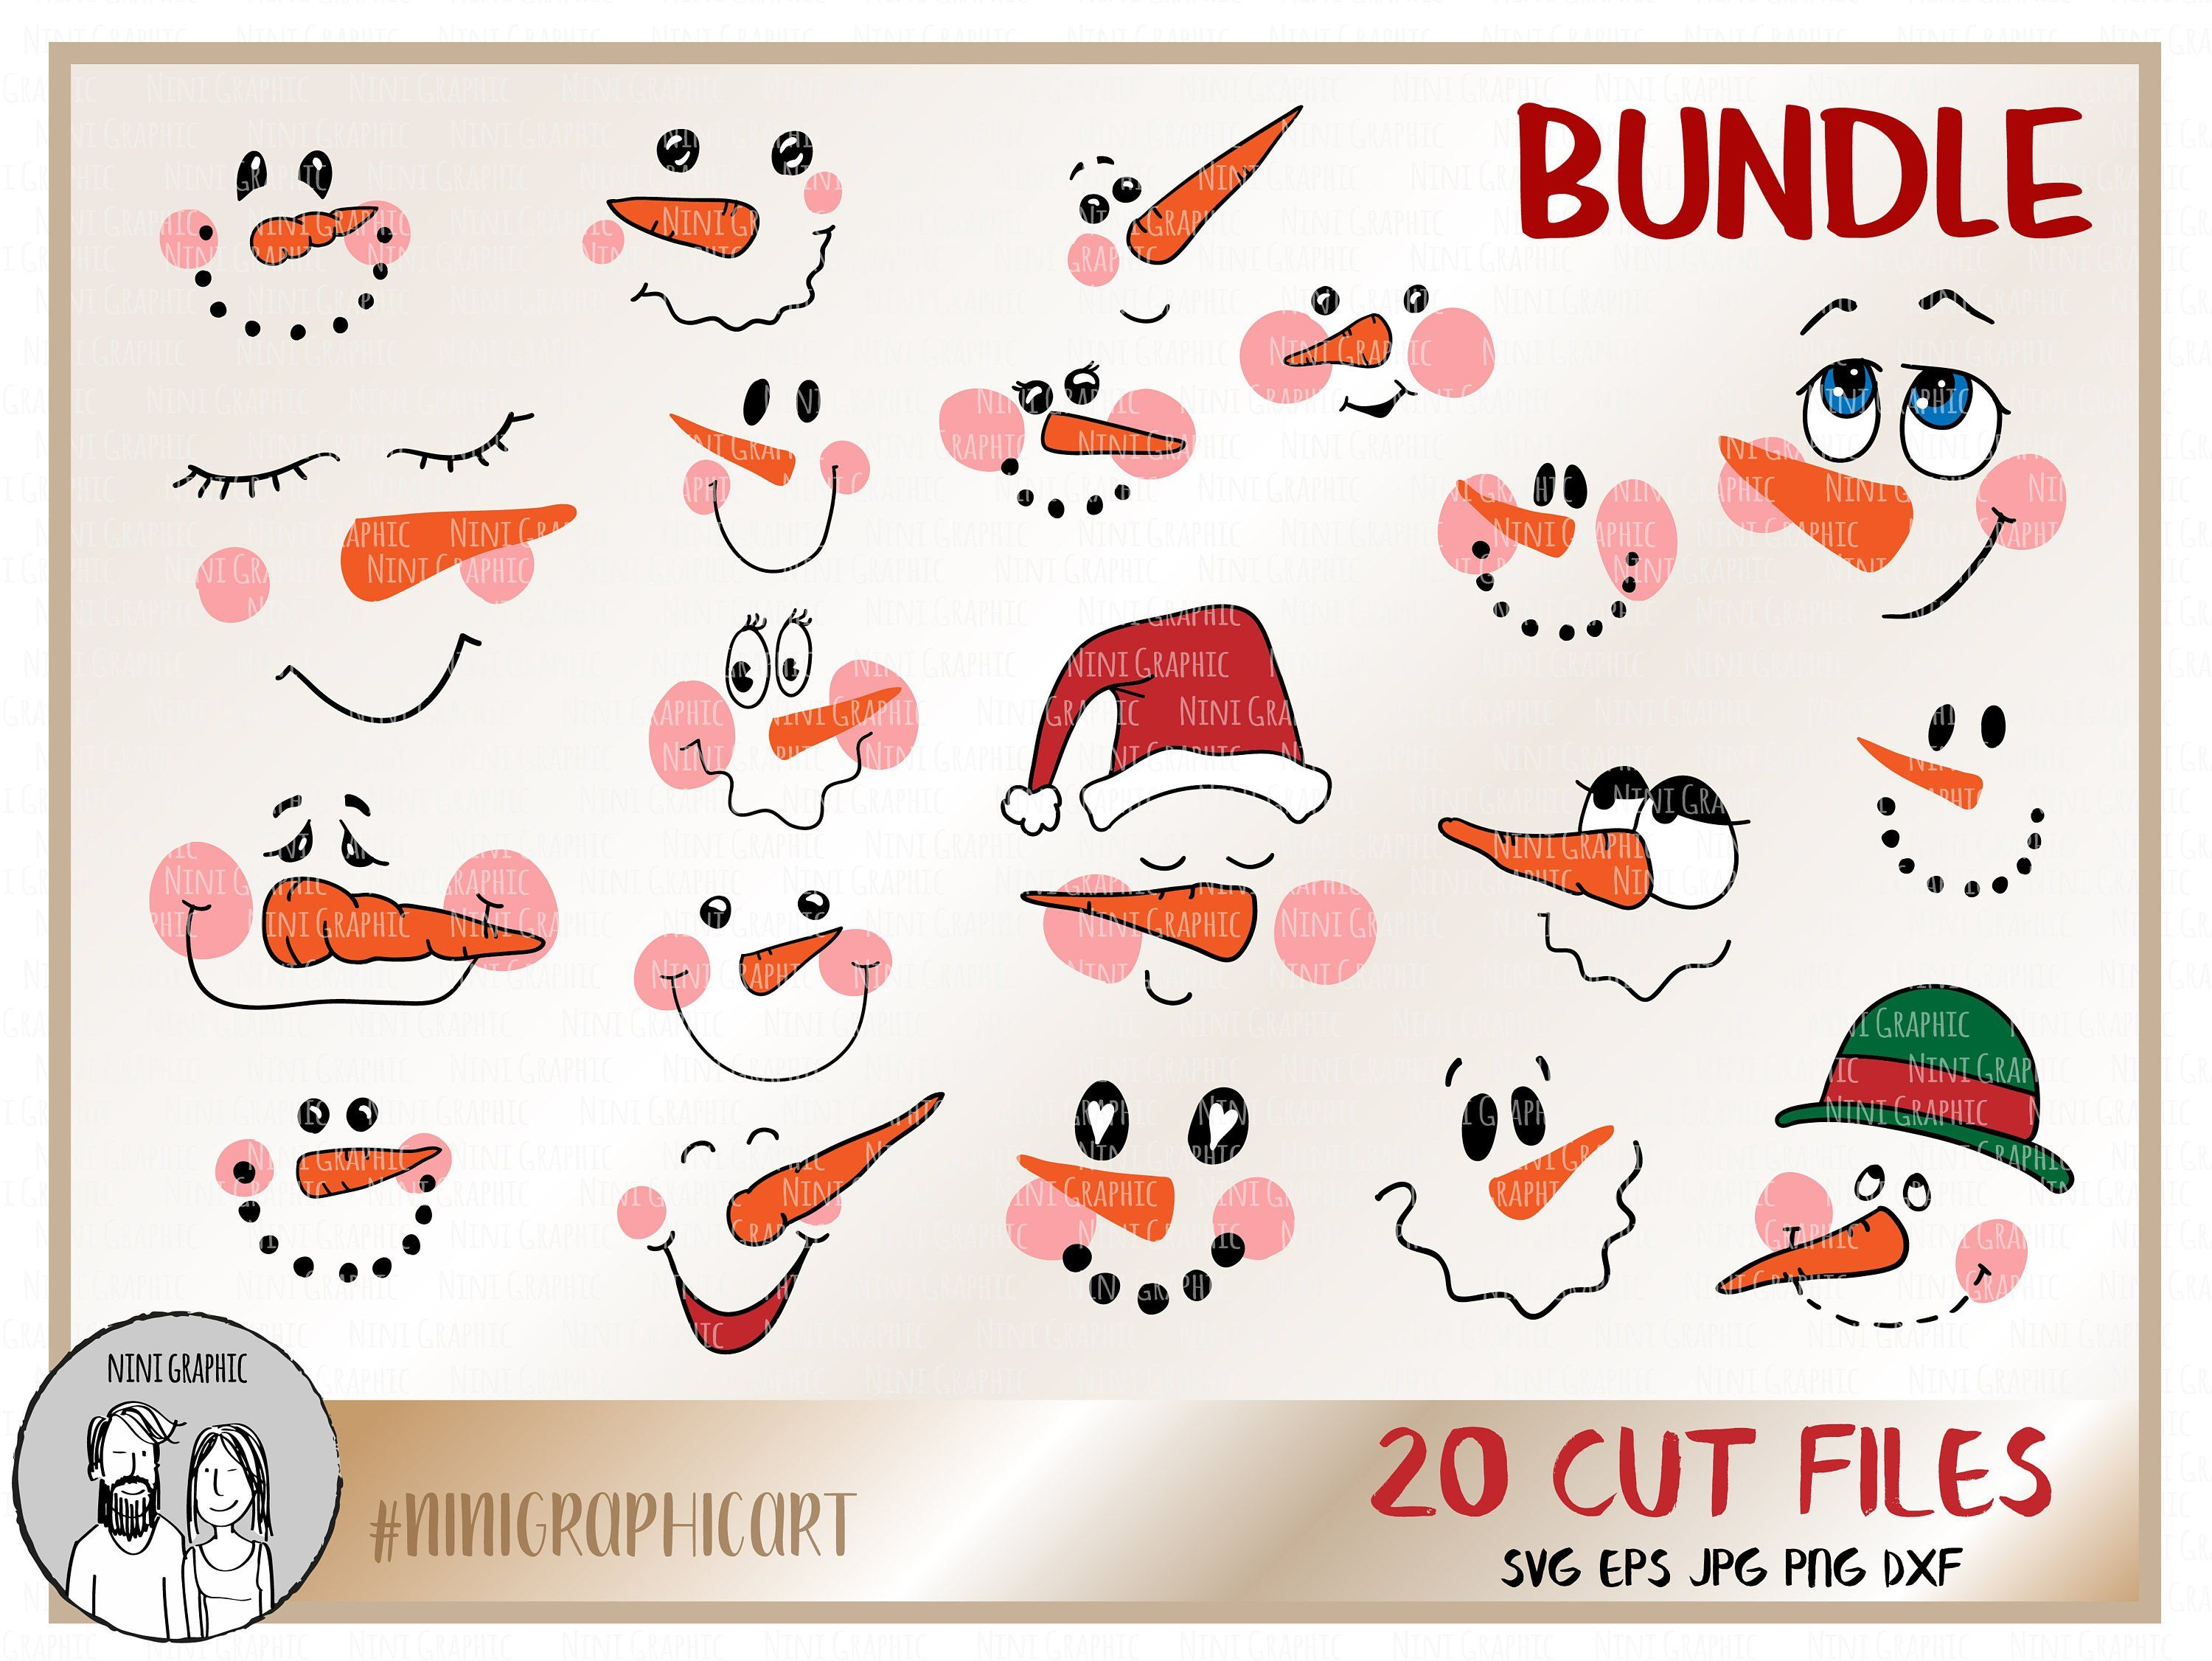 image 0 Snowman faces, Christmas svg, Christmas svg files